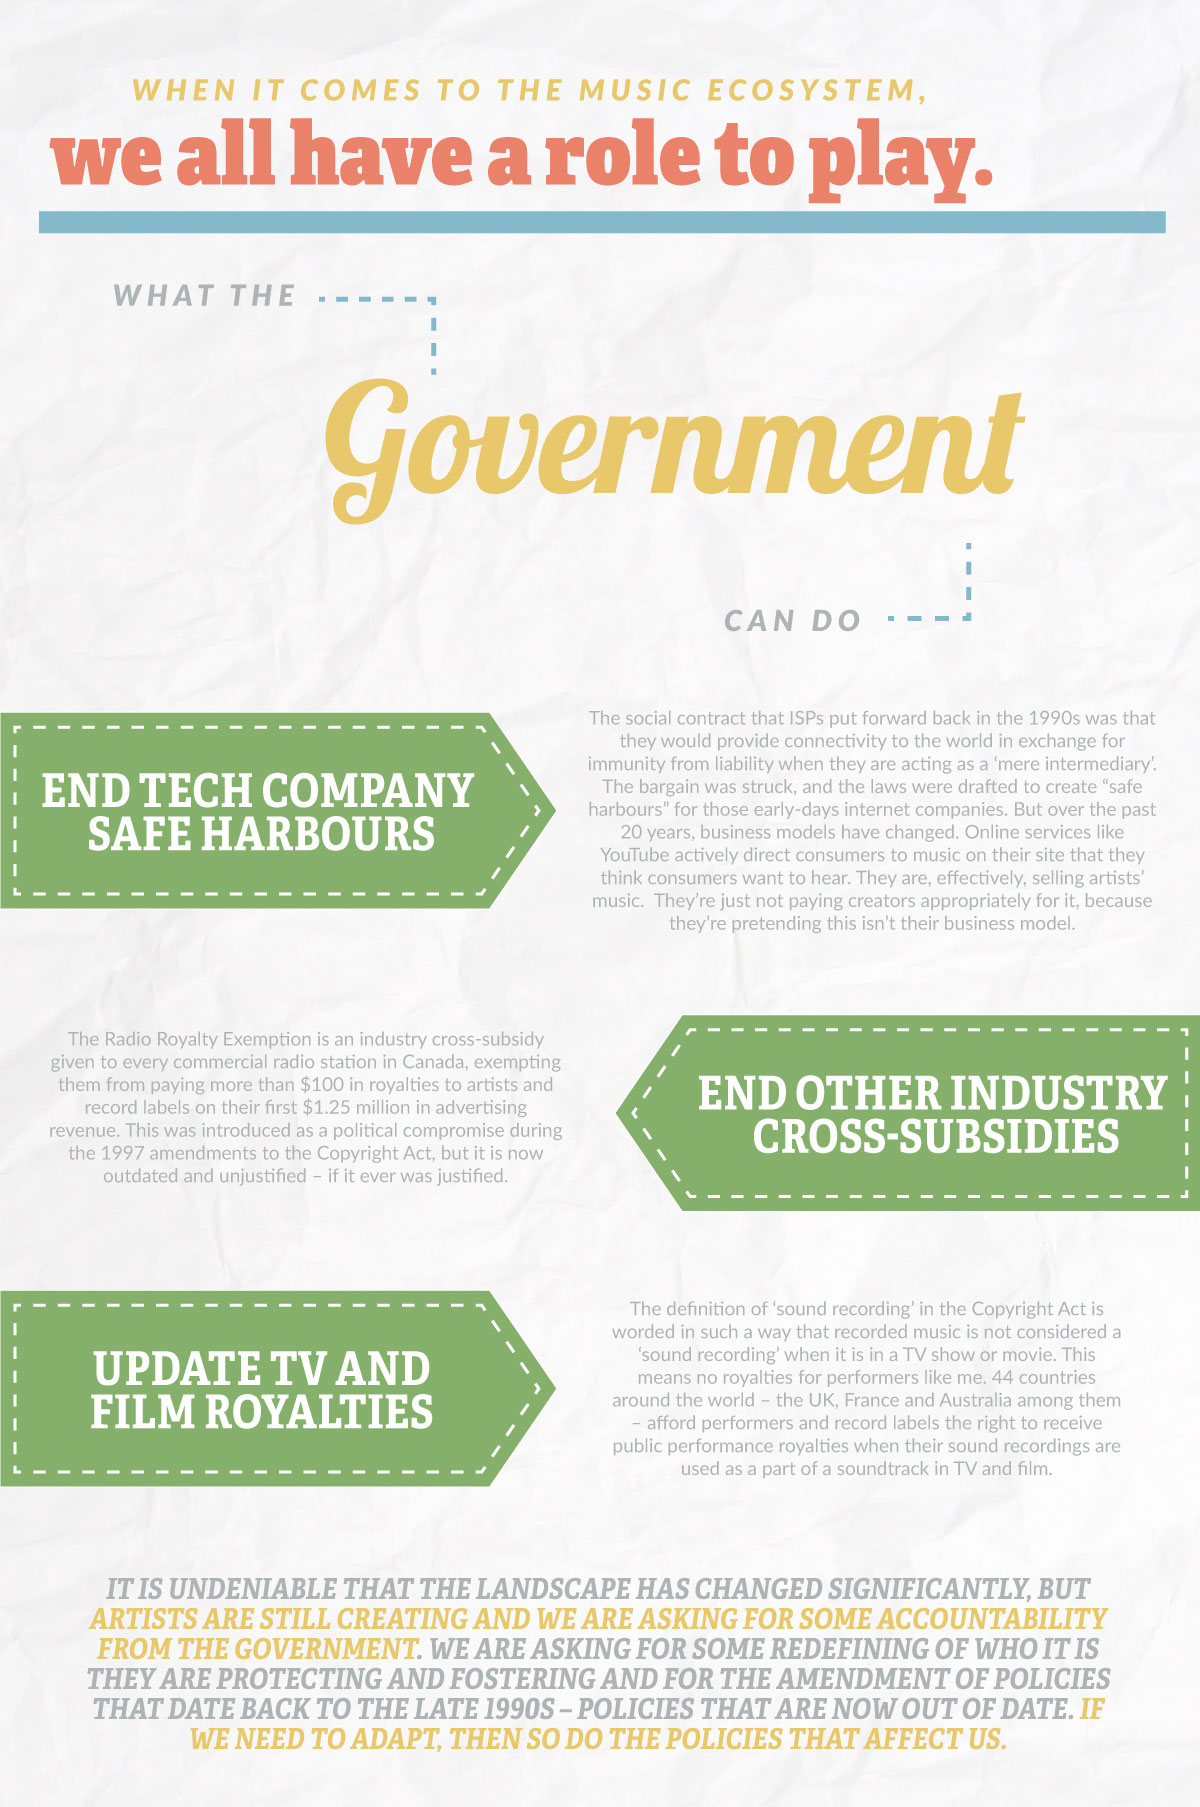 MM-Infographic-Government.jpg